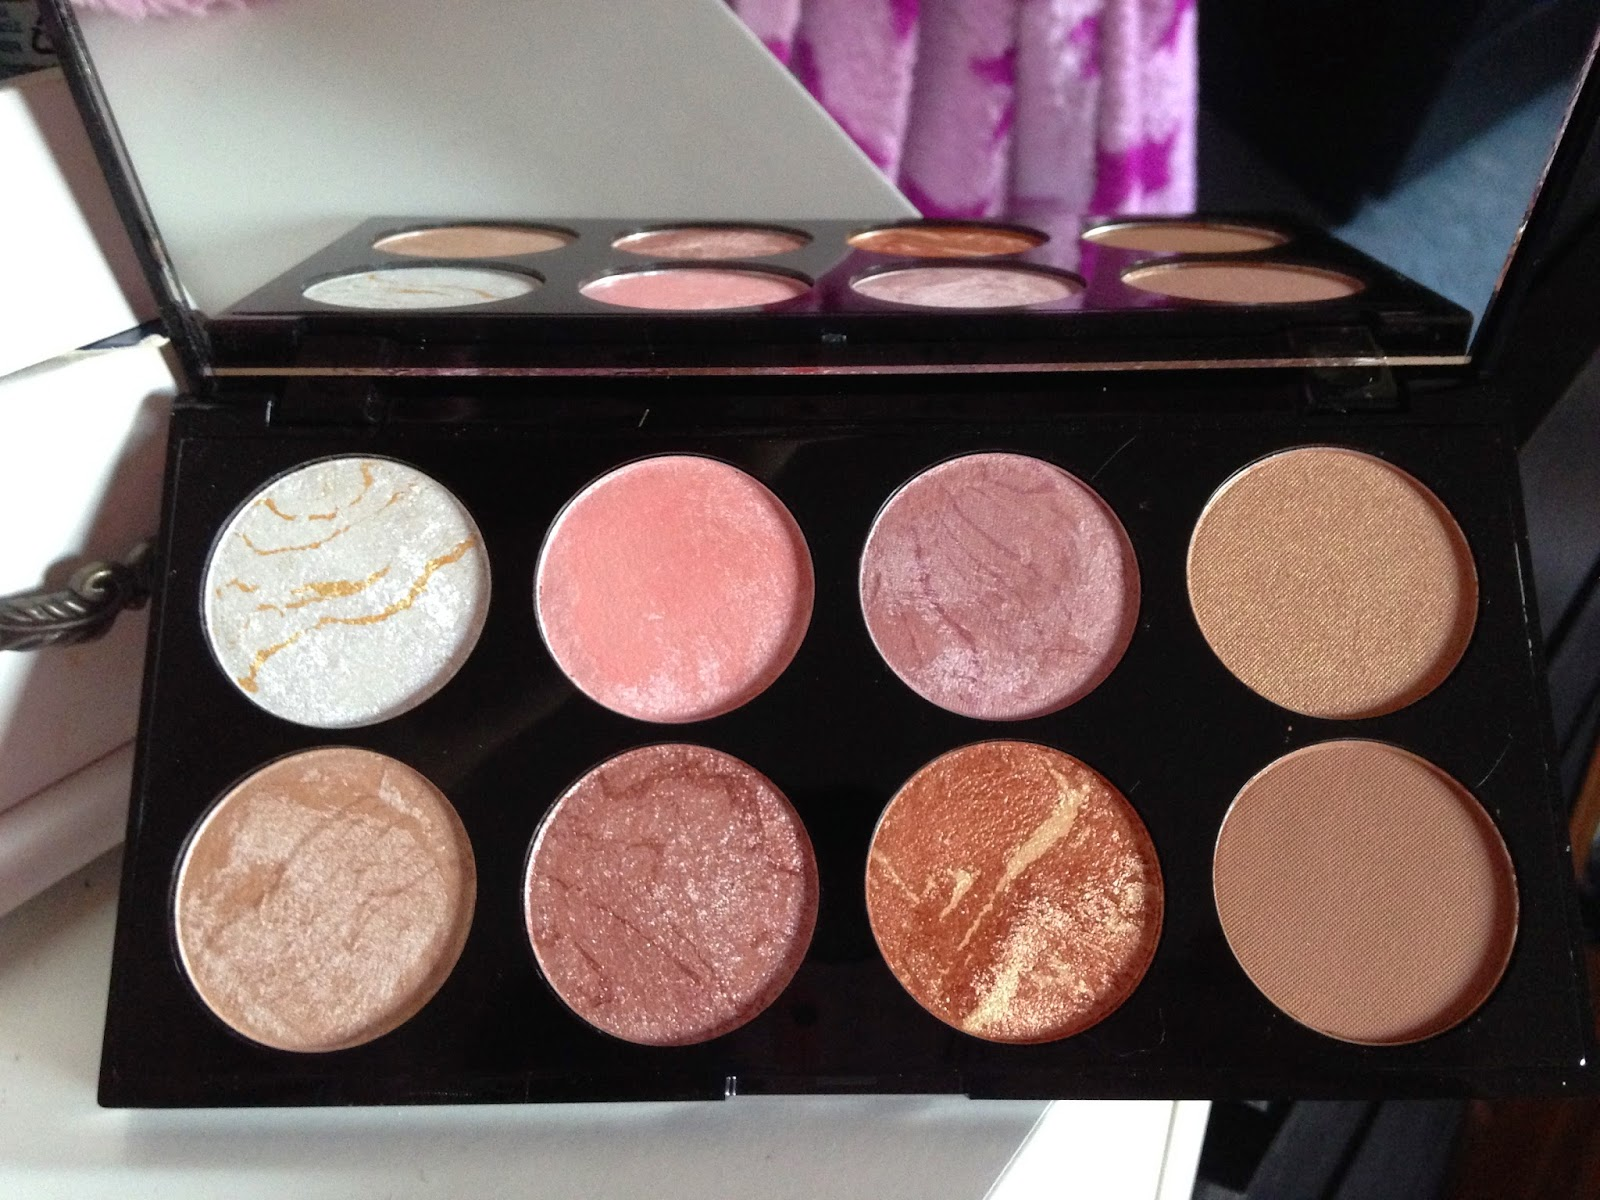 Makeup Revolution Golden Sugar Blush and Contour Palette